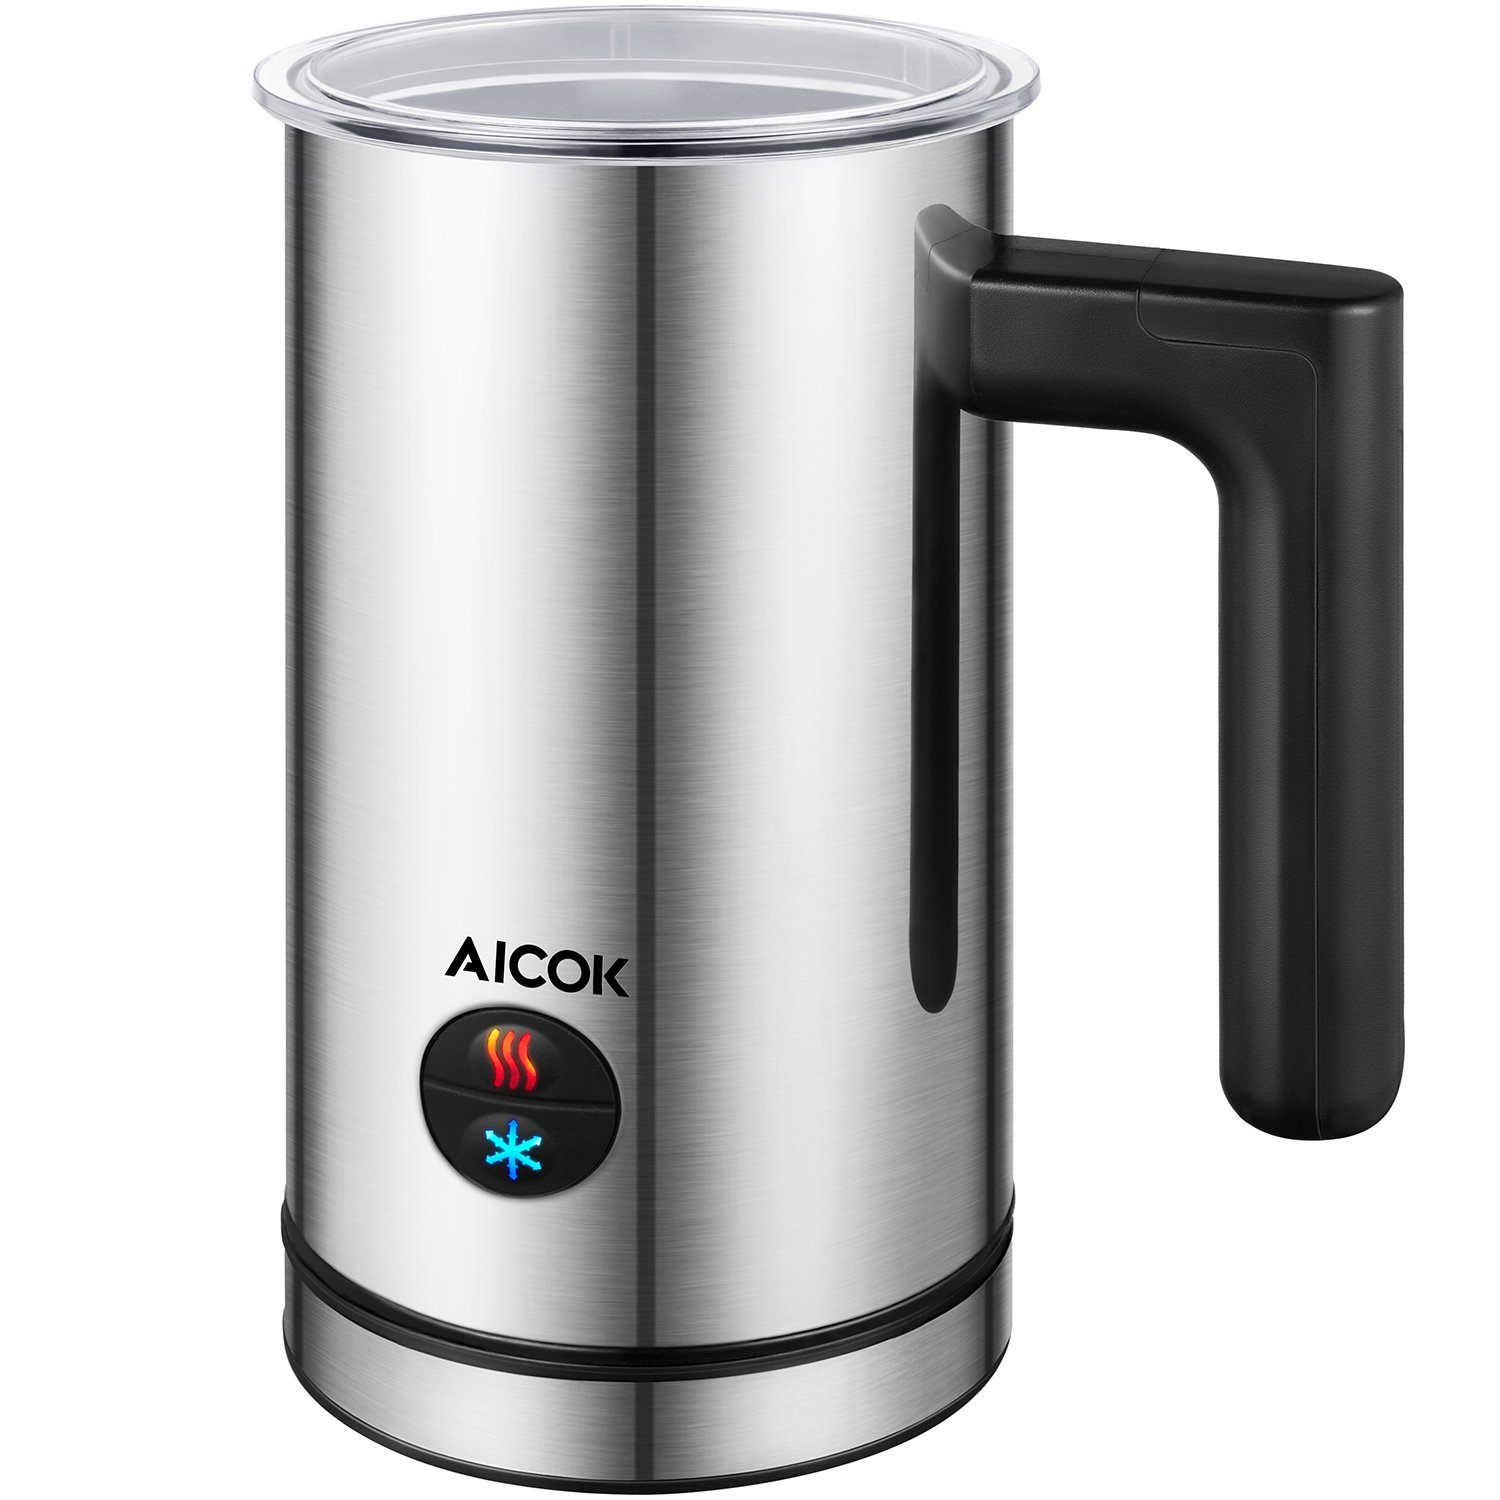 Aicok Milk Frother, Milk Steamer with New Foam Density